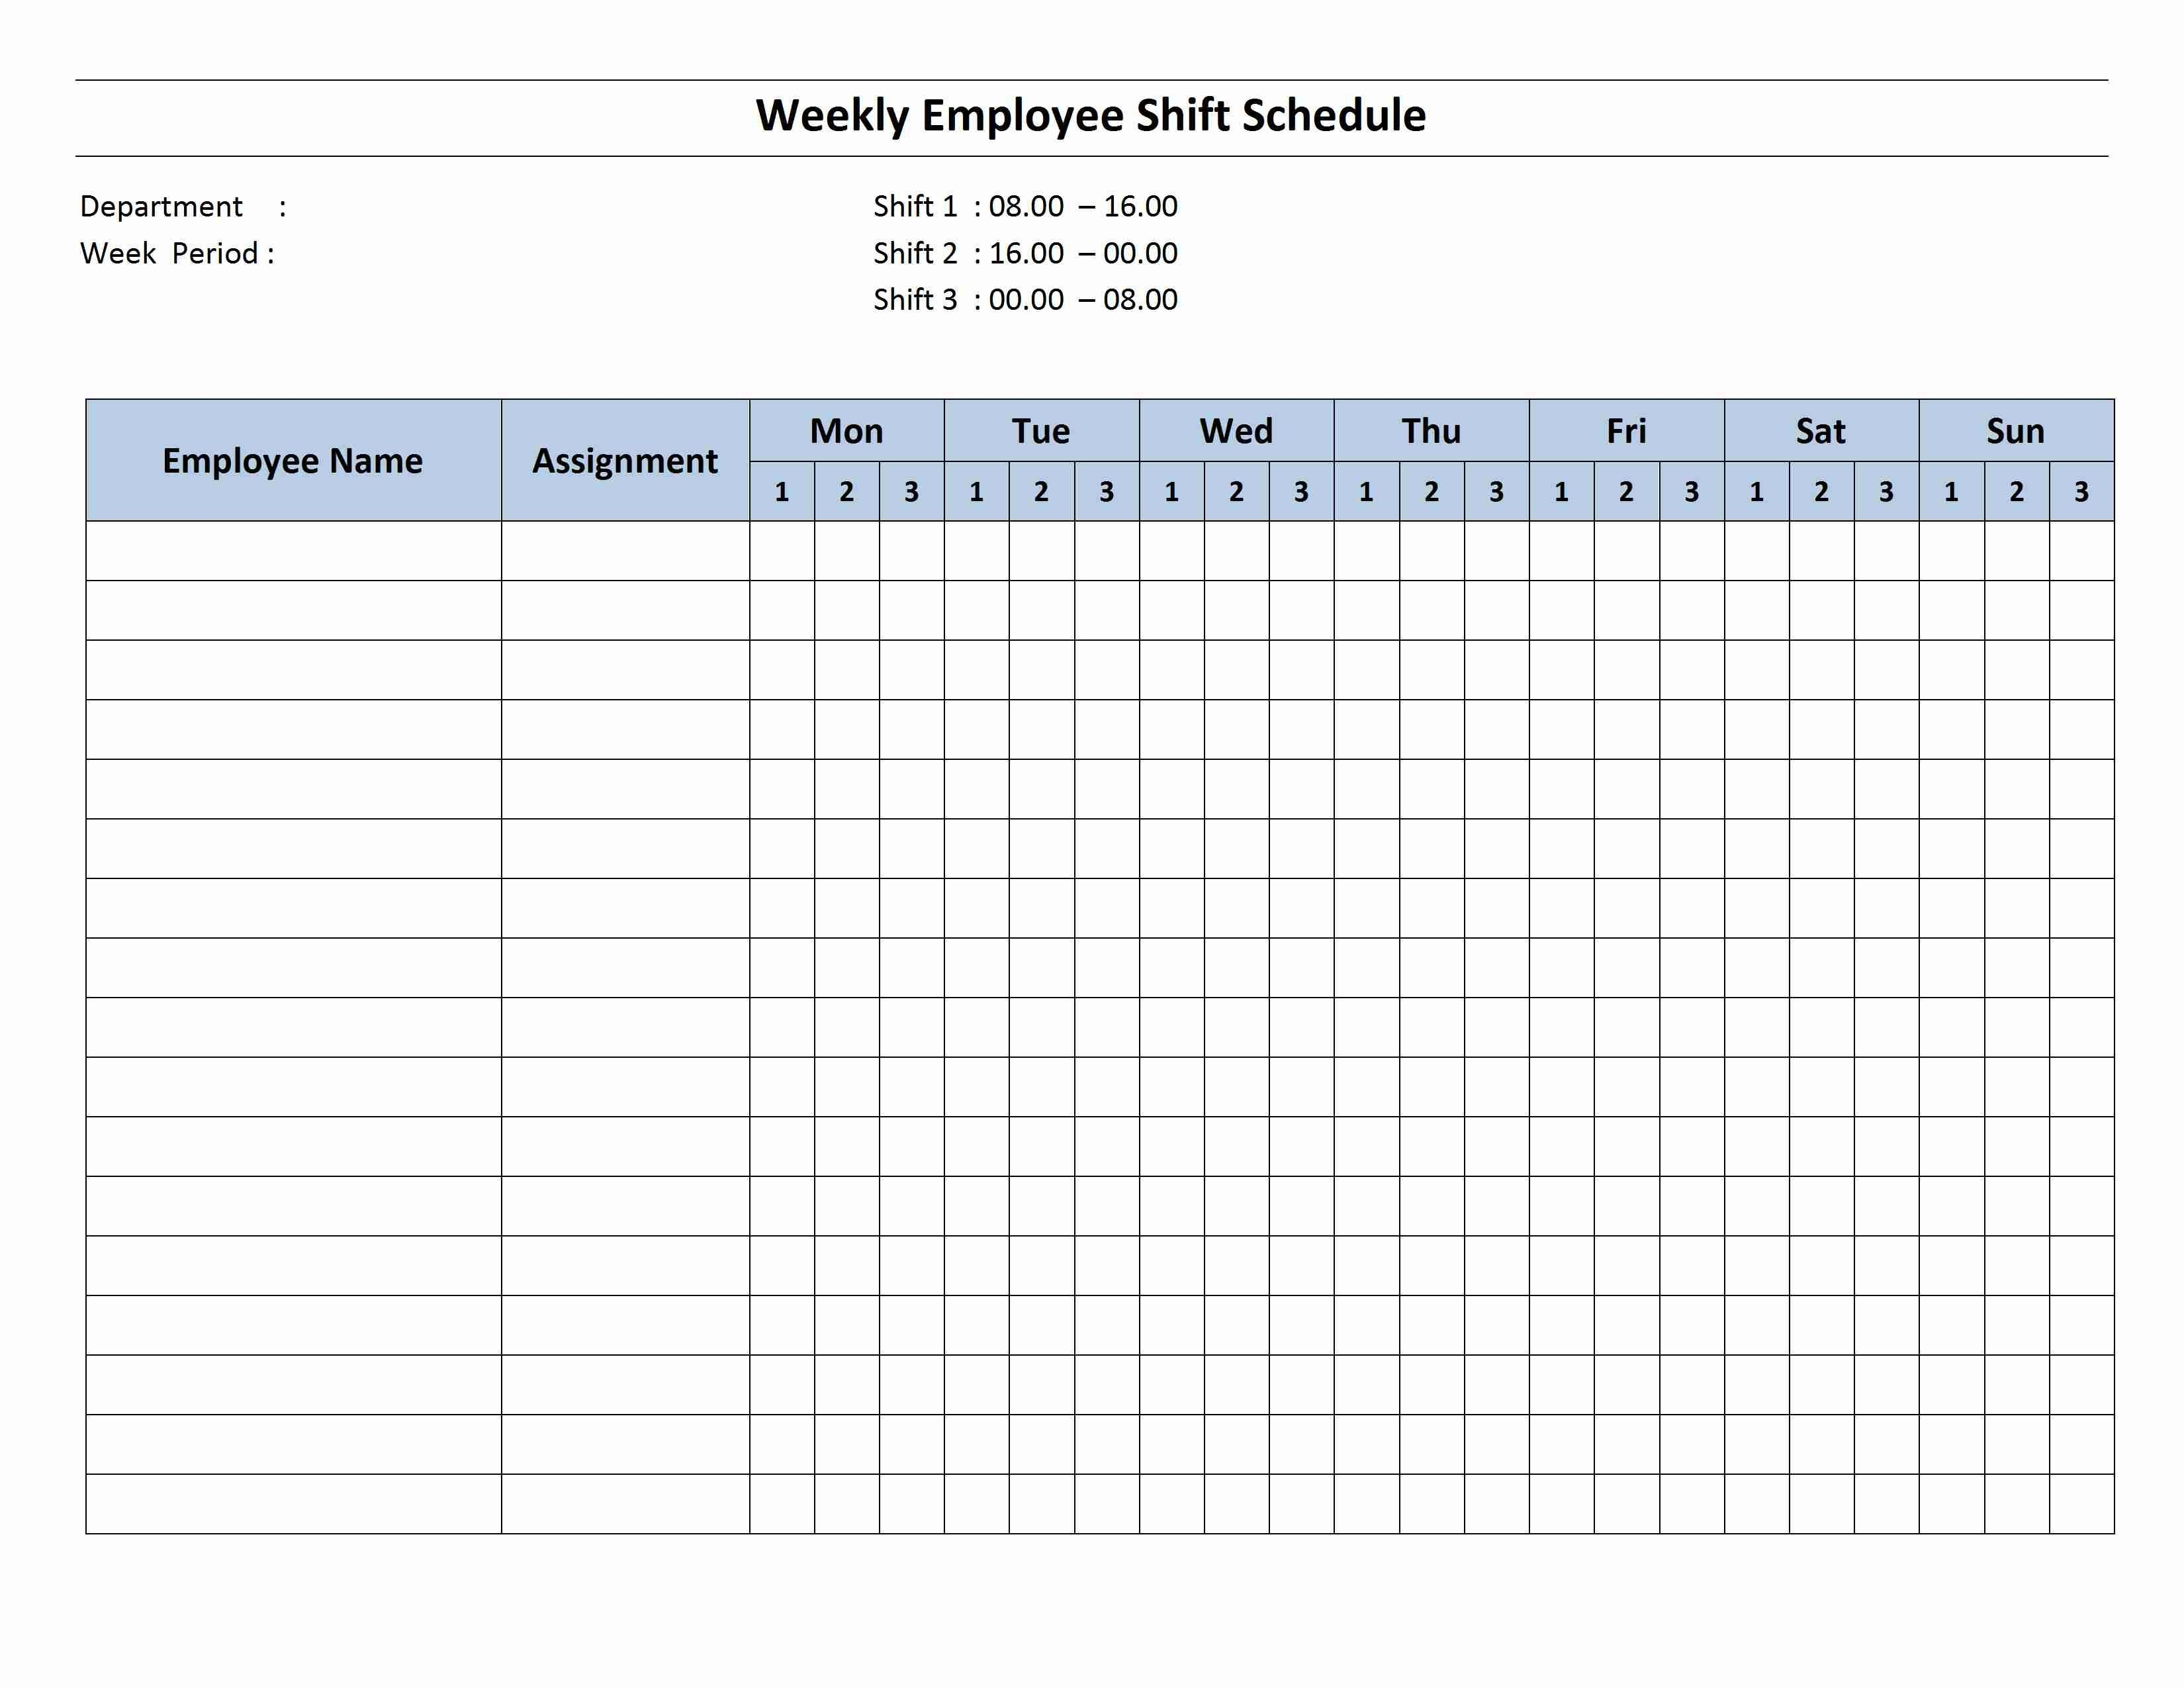 Free Monthly Work Schedule Template | Weekly Employee 8 Hour Shift - Free Printable Weekly Work Schedule